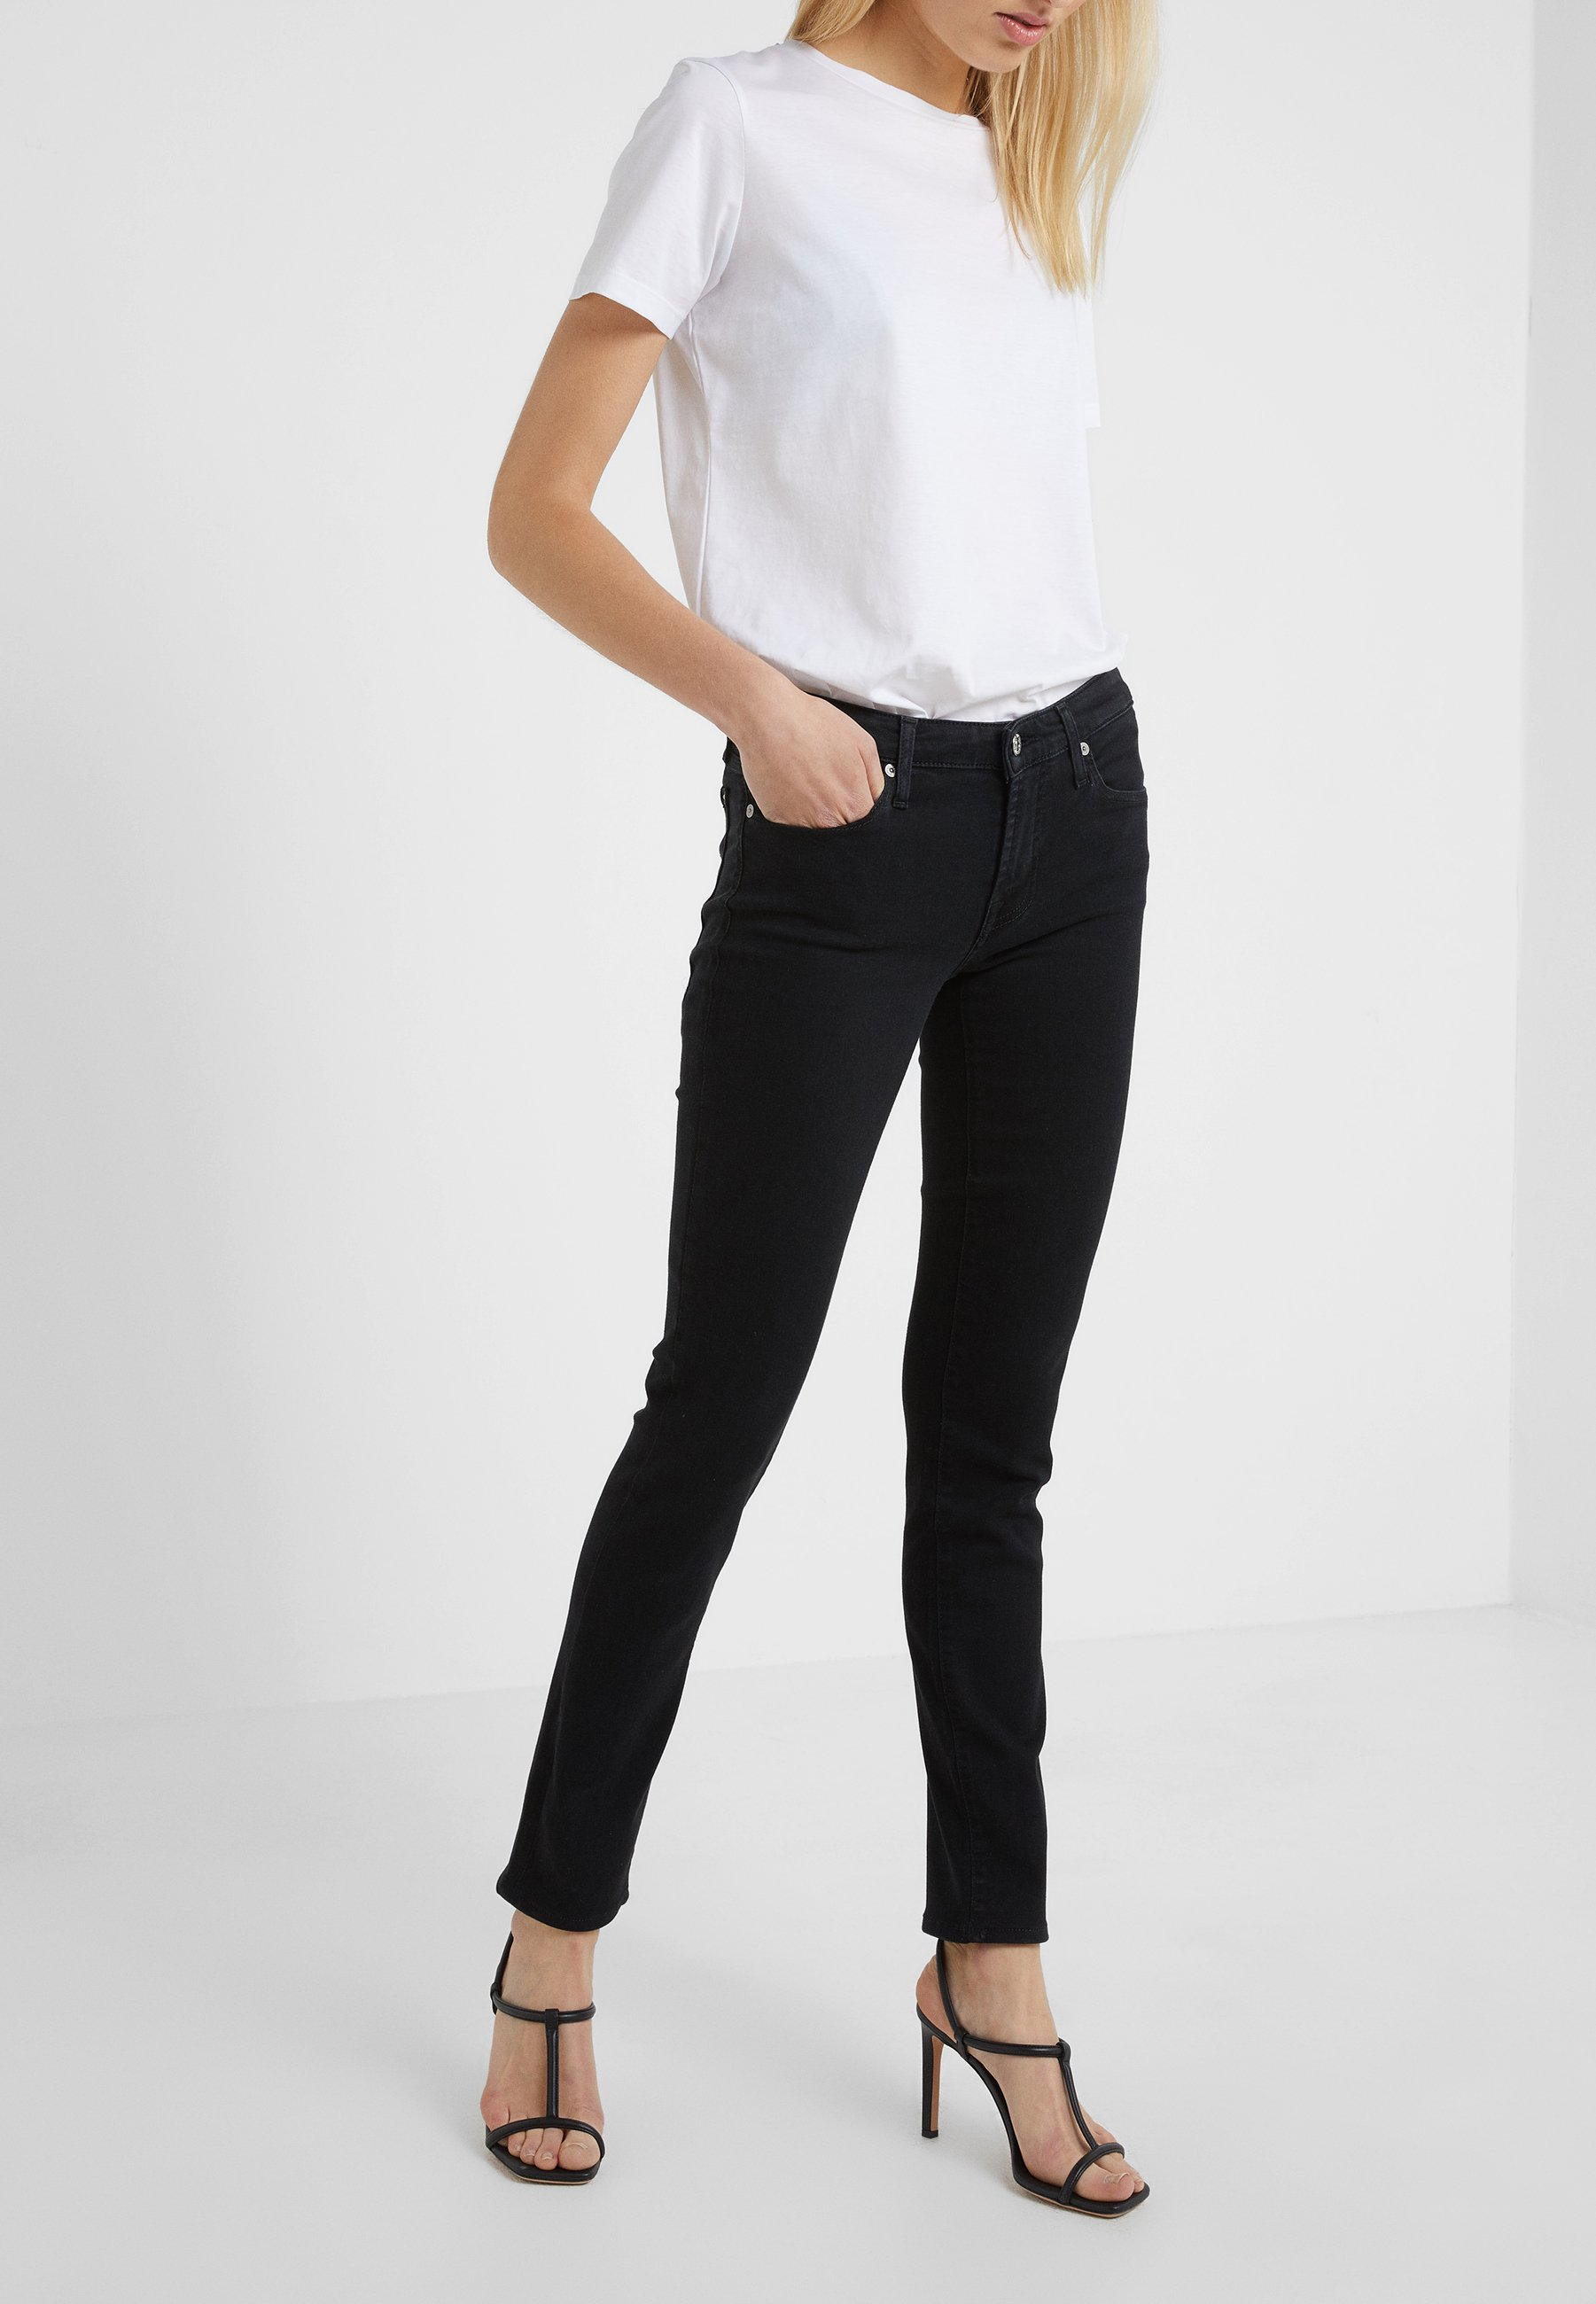 Skinny 7 Mankind For All Black Pyper BairJeans 5jc3AL4Rq